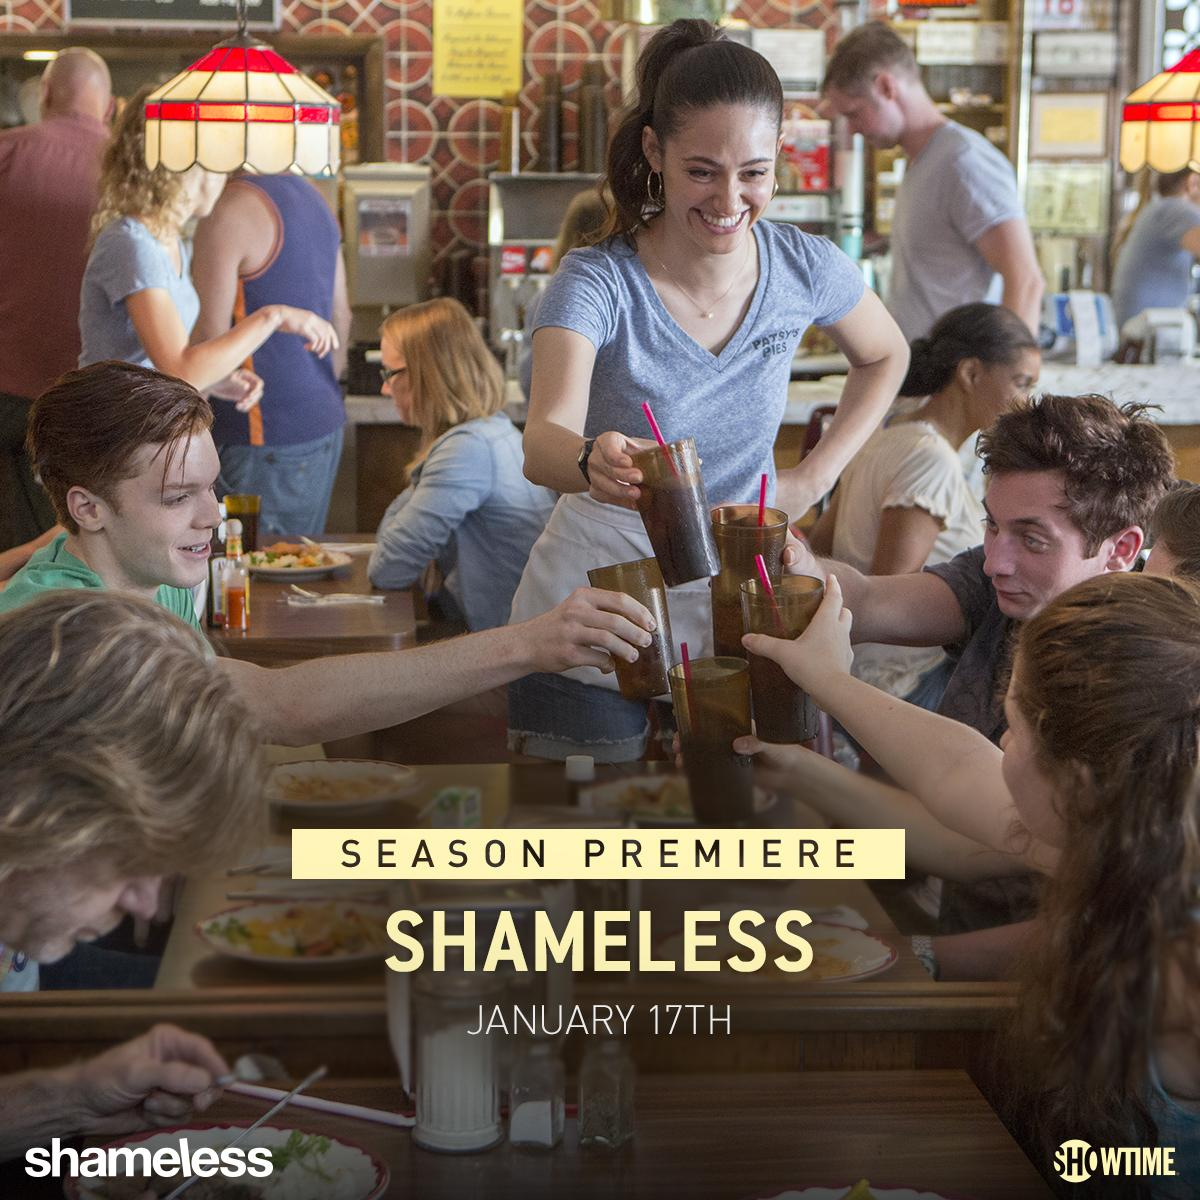 Word on the street is that #Shameless will return Sun 1/17 on #Showtime! #TeamGallagher http://t.co/GMXHfC7qXK